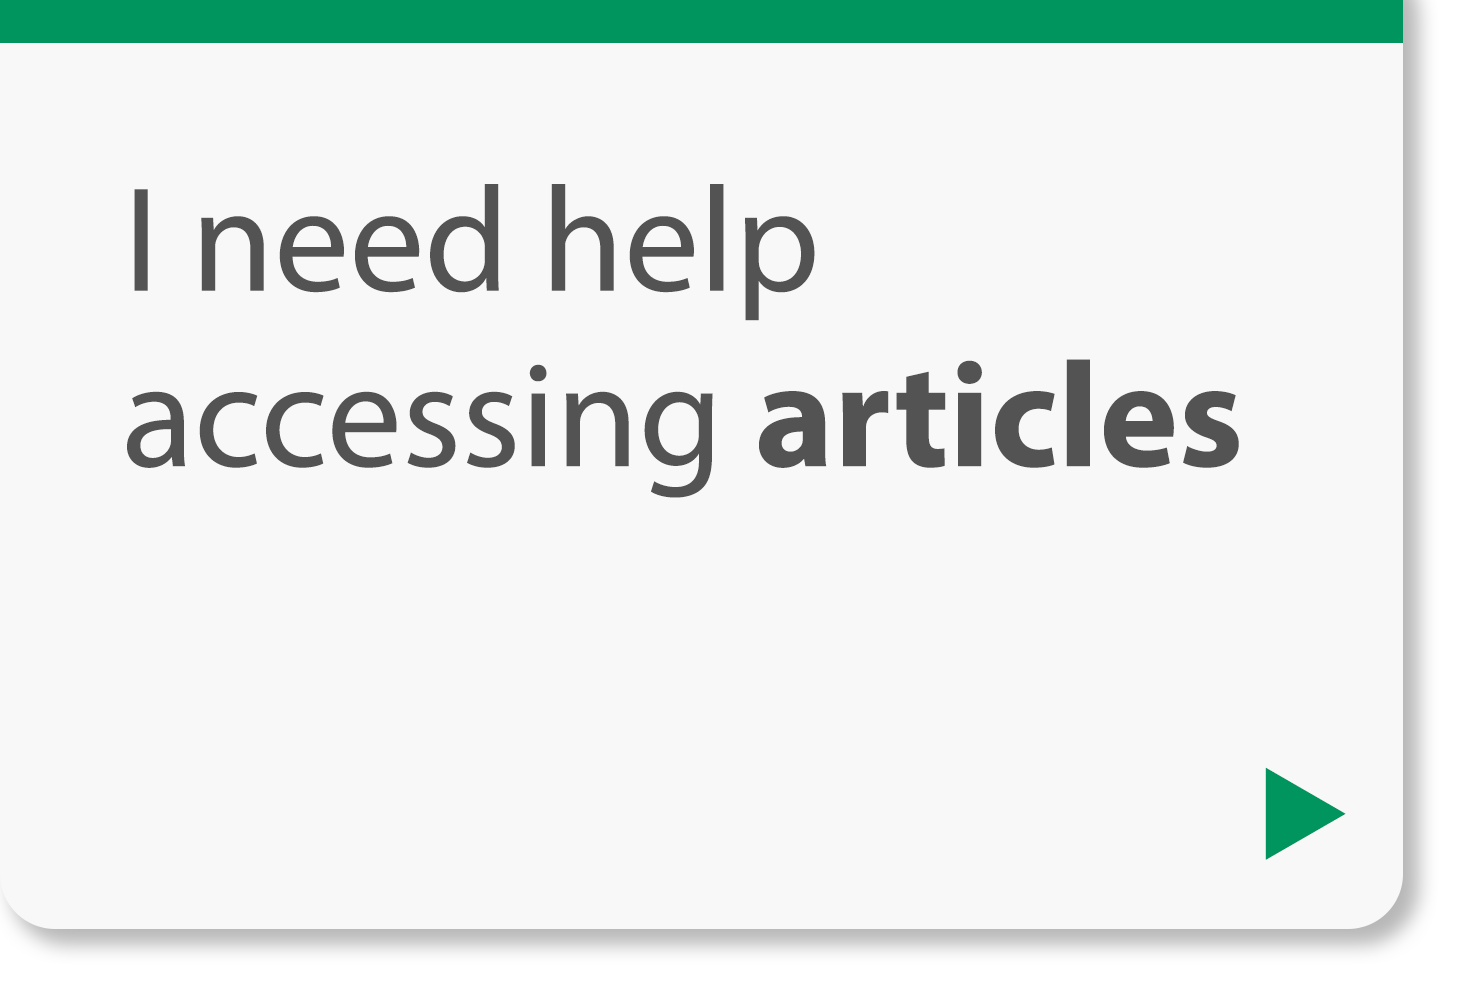 I need help accessing articles